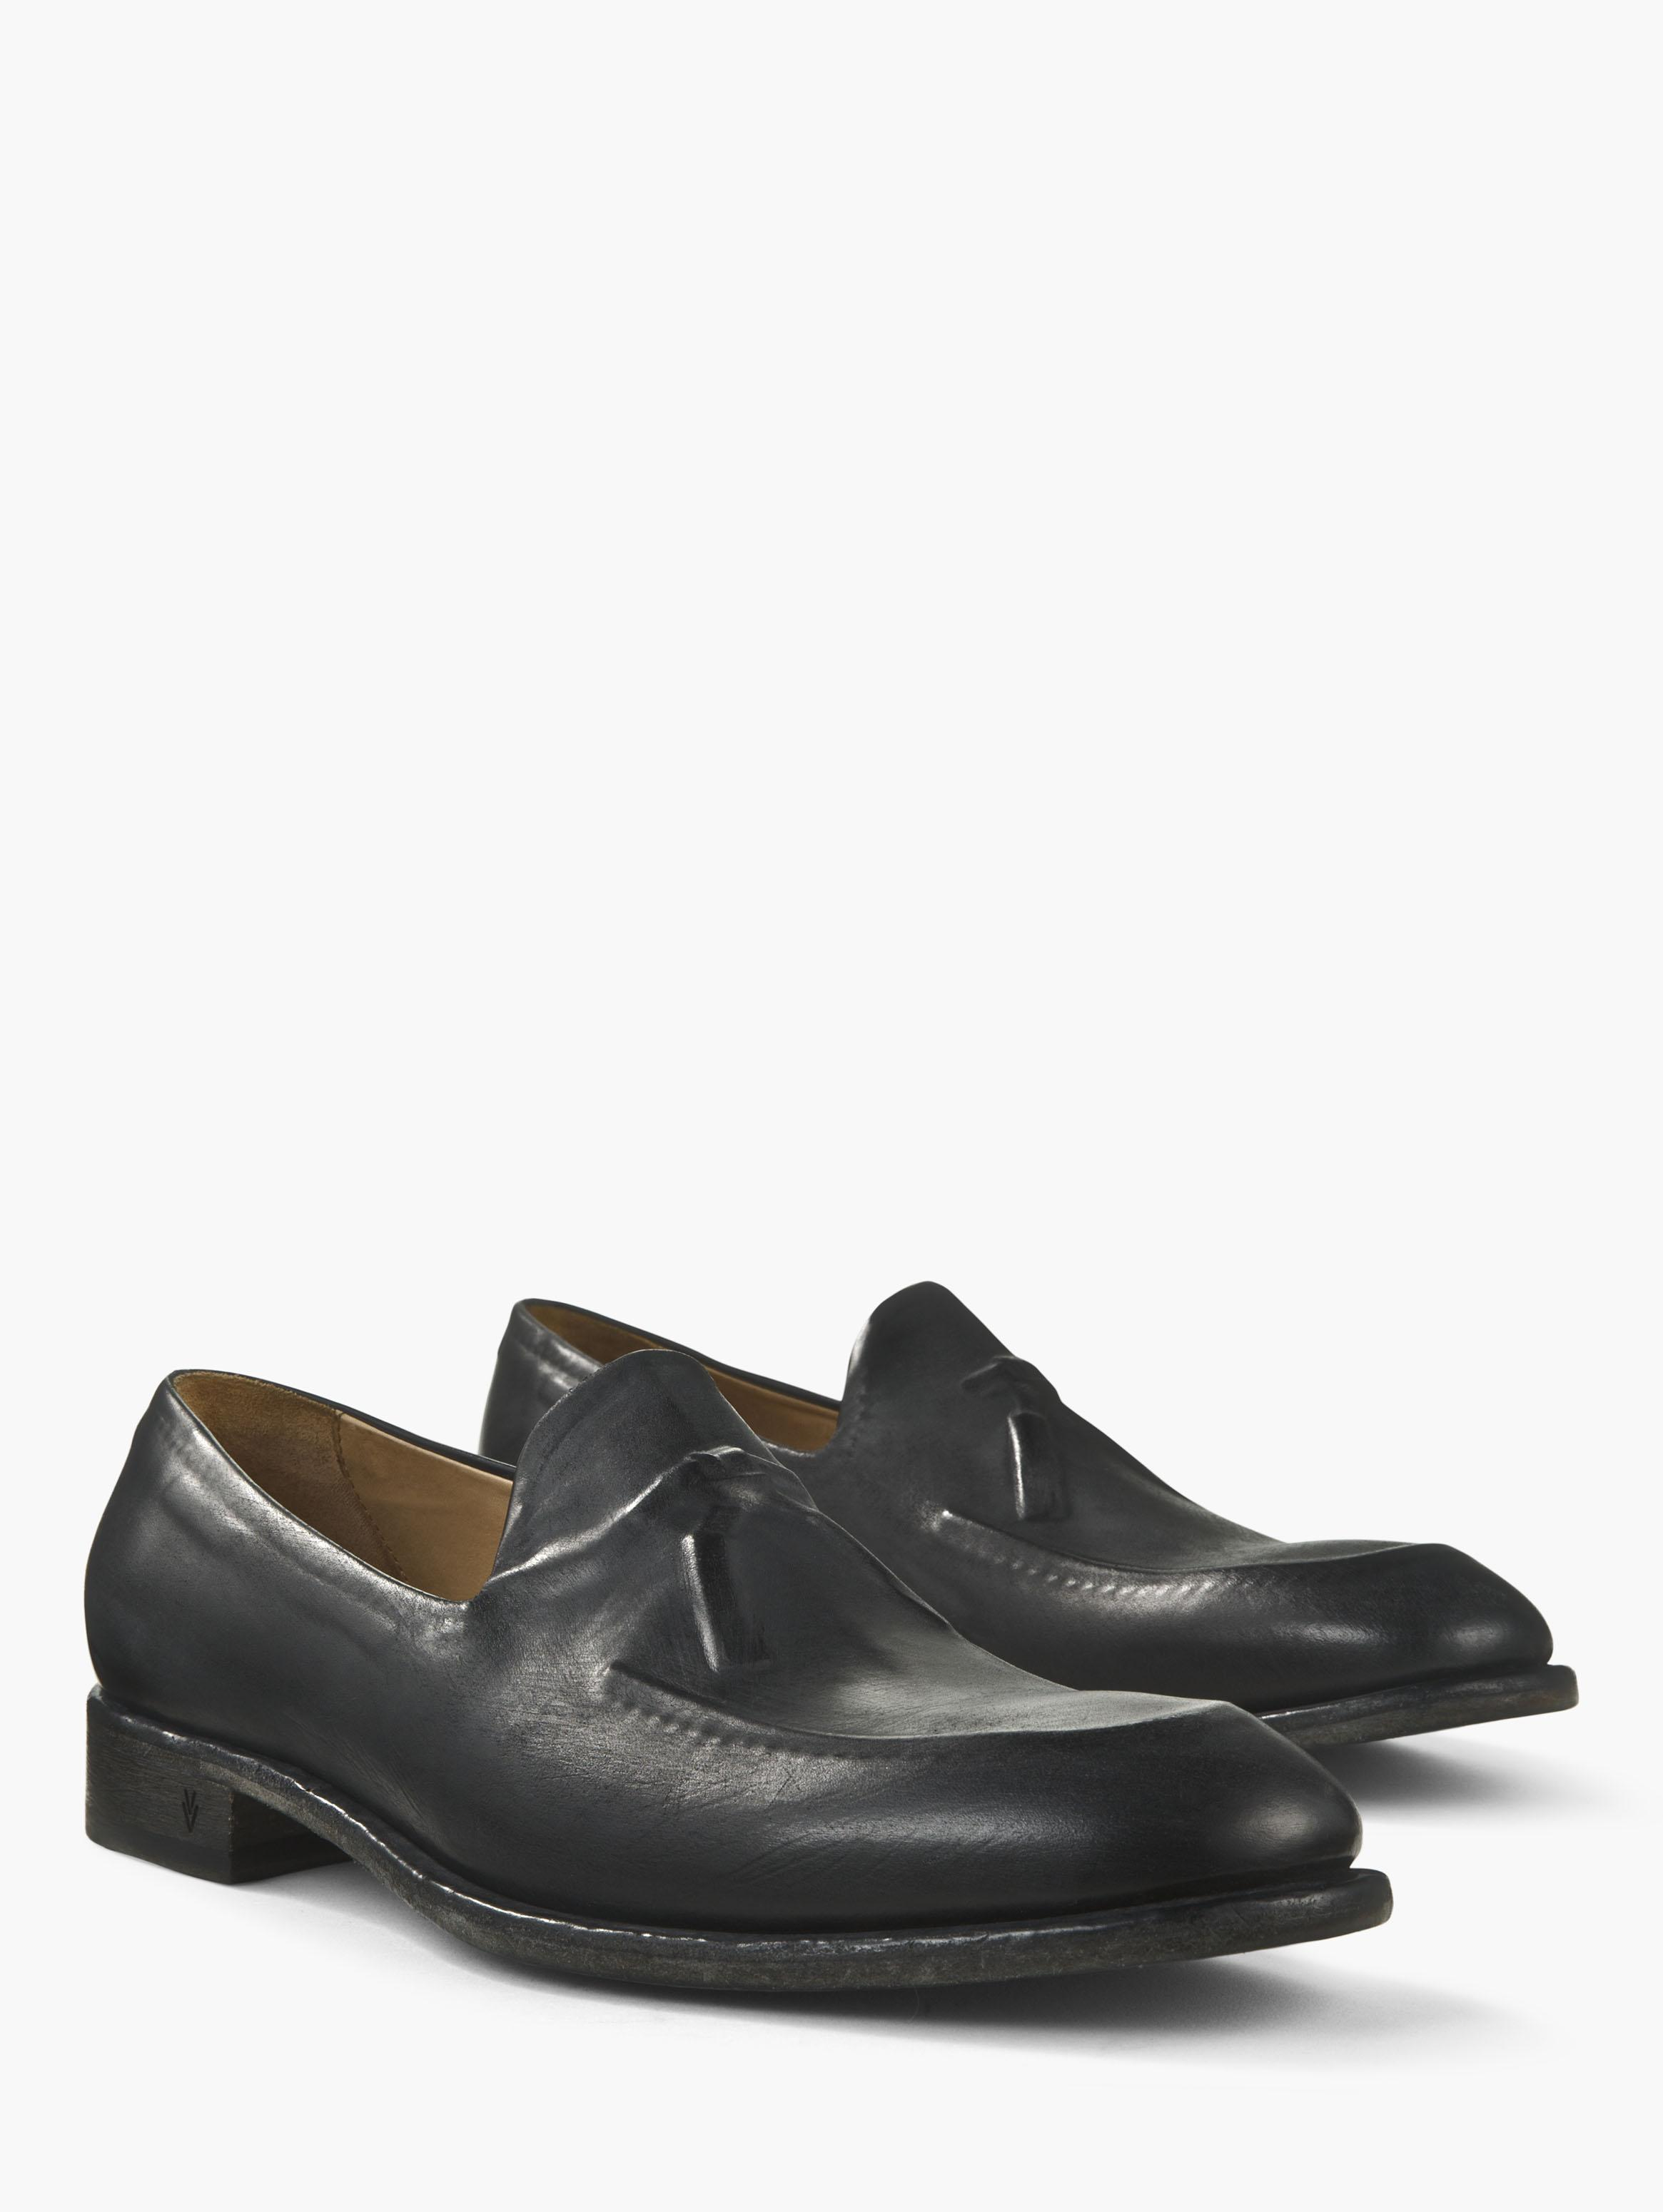 Fleetwood Ghosted Tassel Loafer